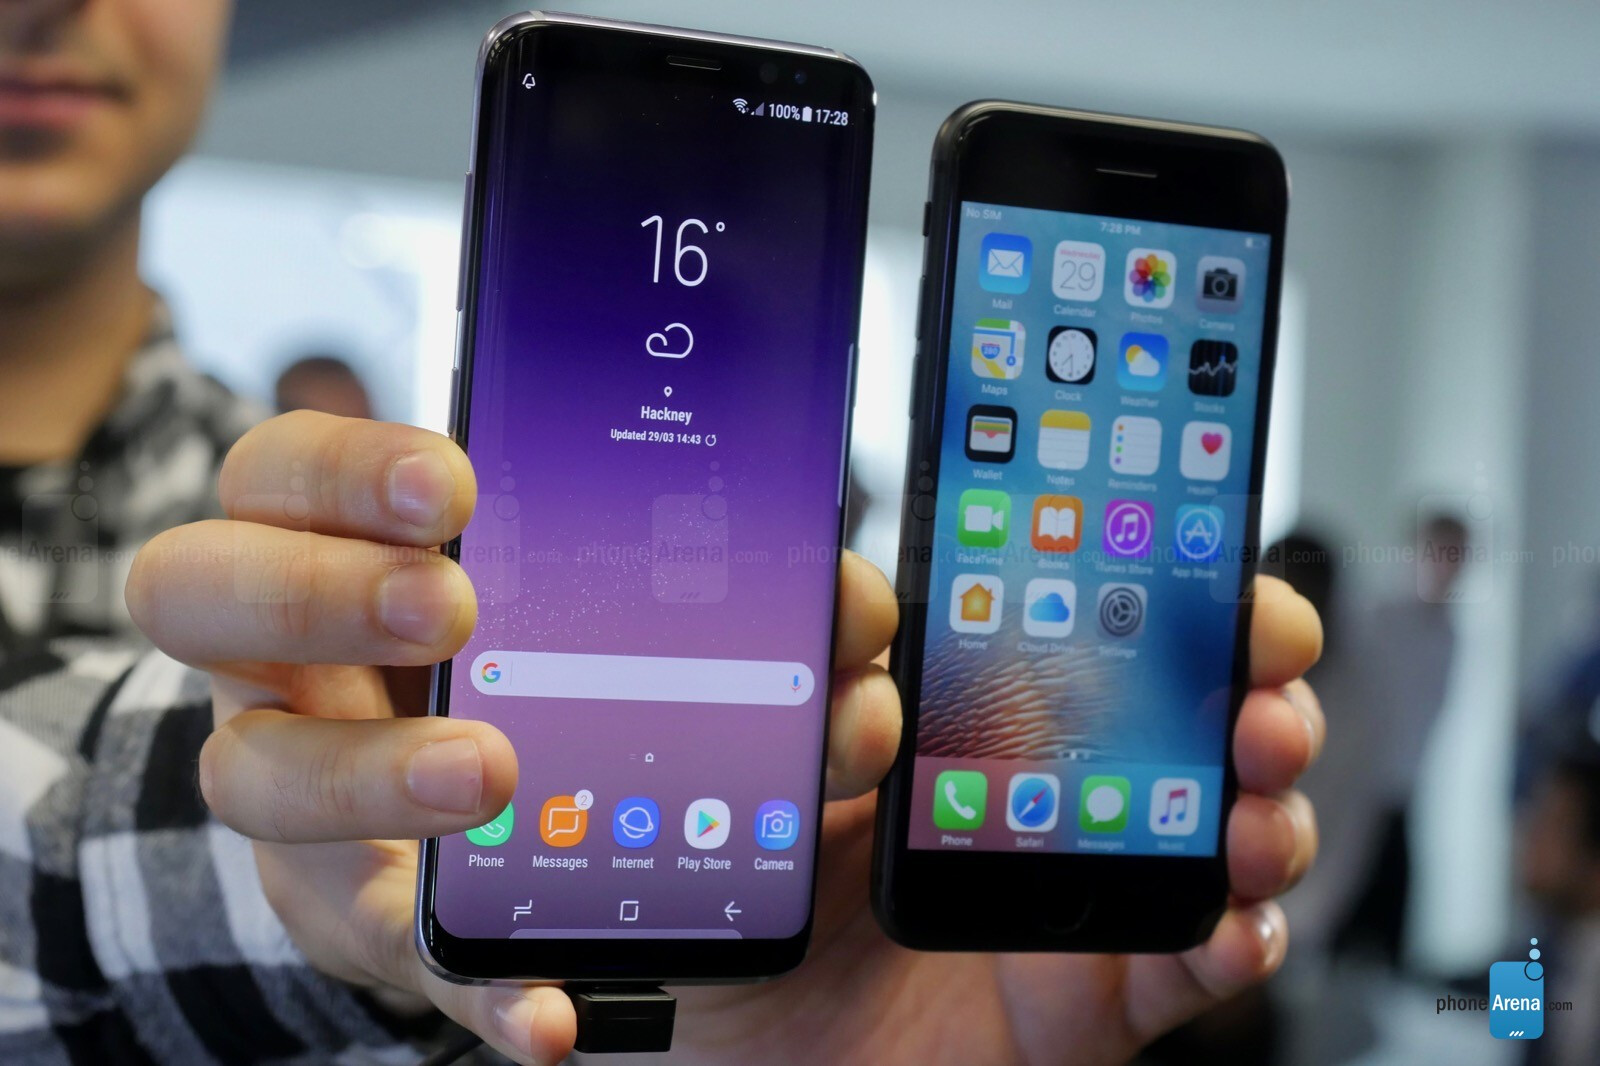 SAMSUNG S8 VS S8+ IPHONE 7